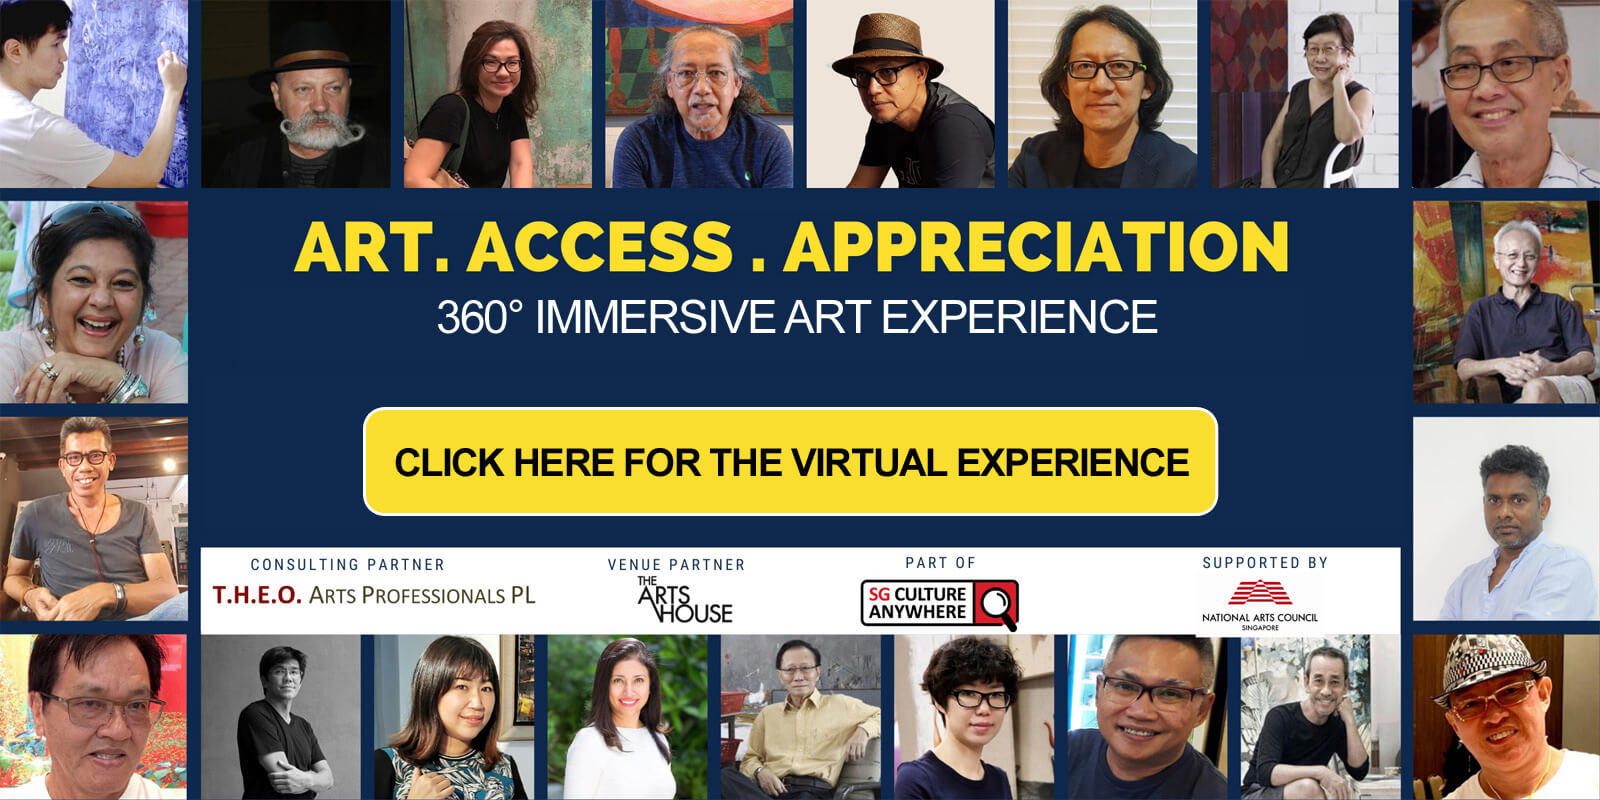 ART ACCESS APPRECIATION VIRTUAL EXHIBITION